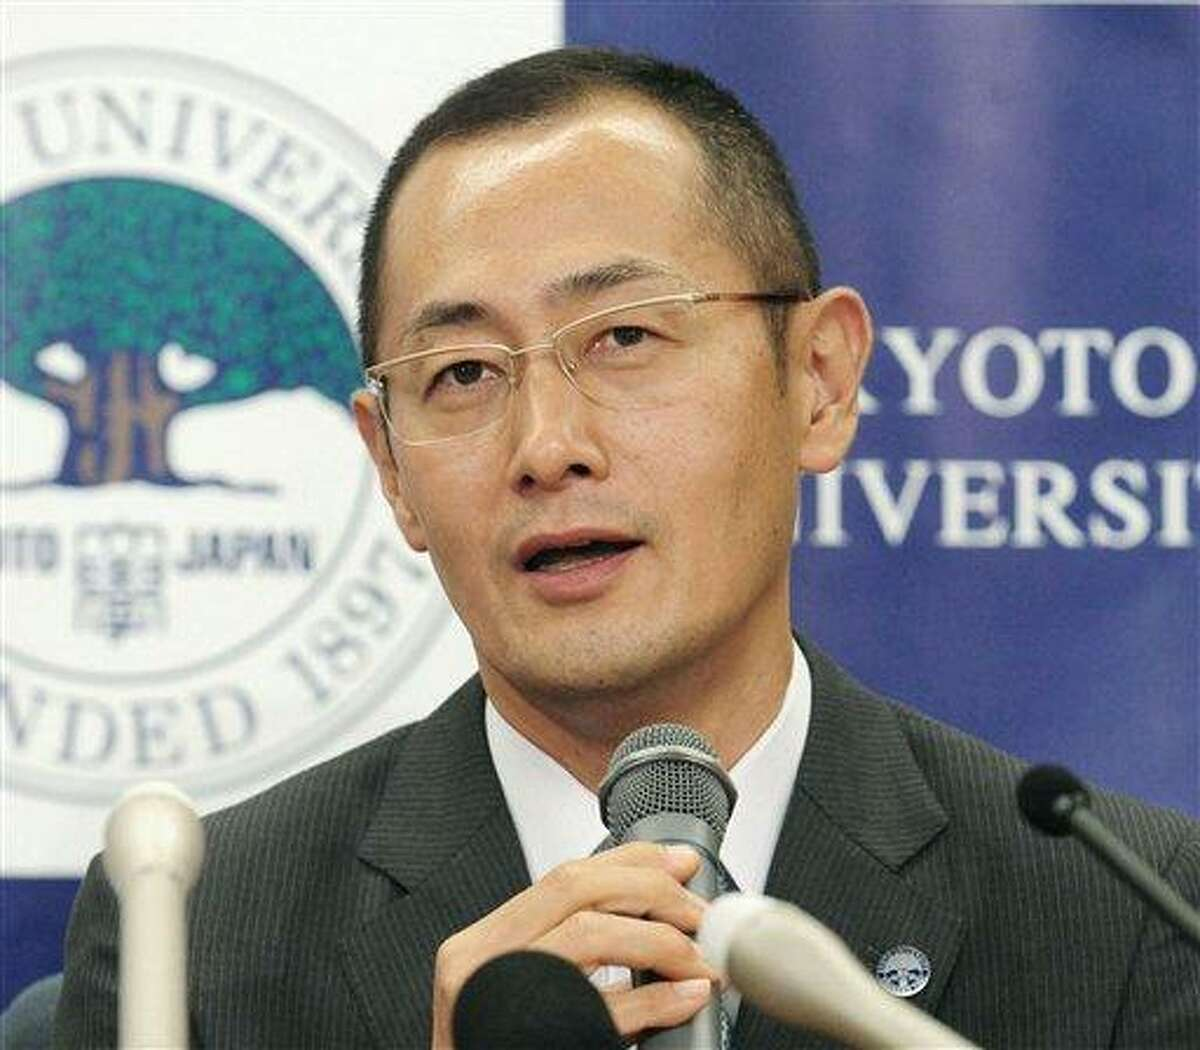 Kyoto University Professor Shinya Yamanaka speaks Monday during a news conference at Kyoto University in Kyoto, western Japan, after learning that he and British researcher John Gurdon won this year's Nobel Prize in medicine. Associated Press/Kyodo News